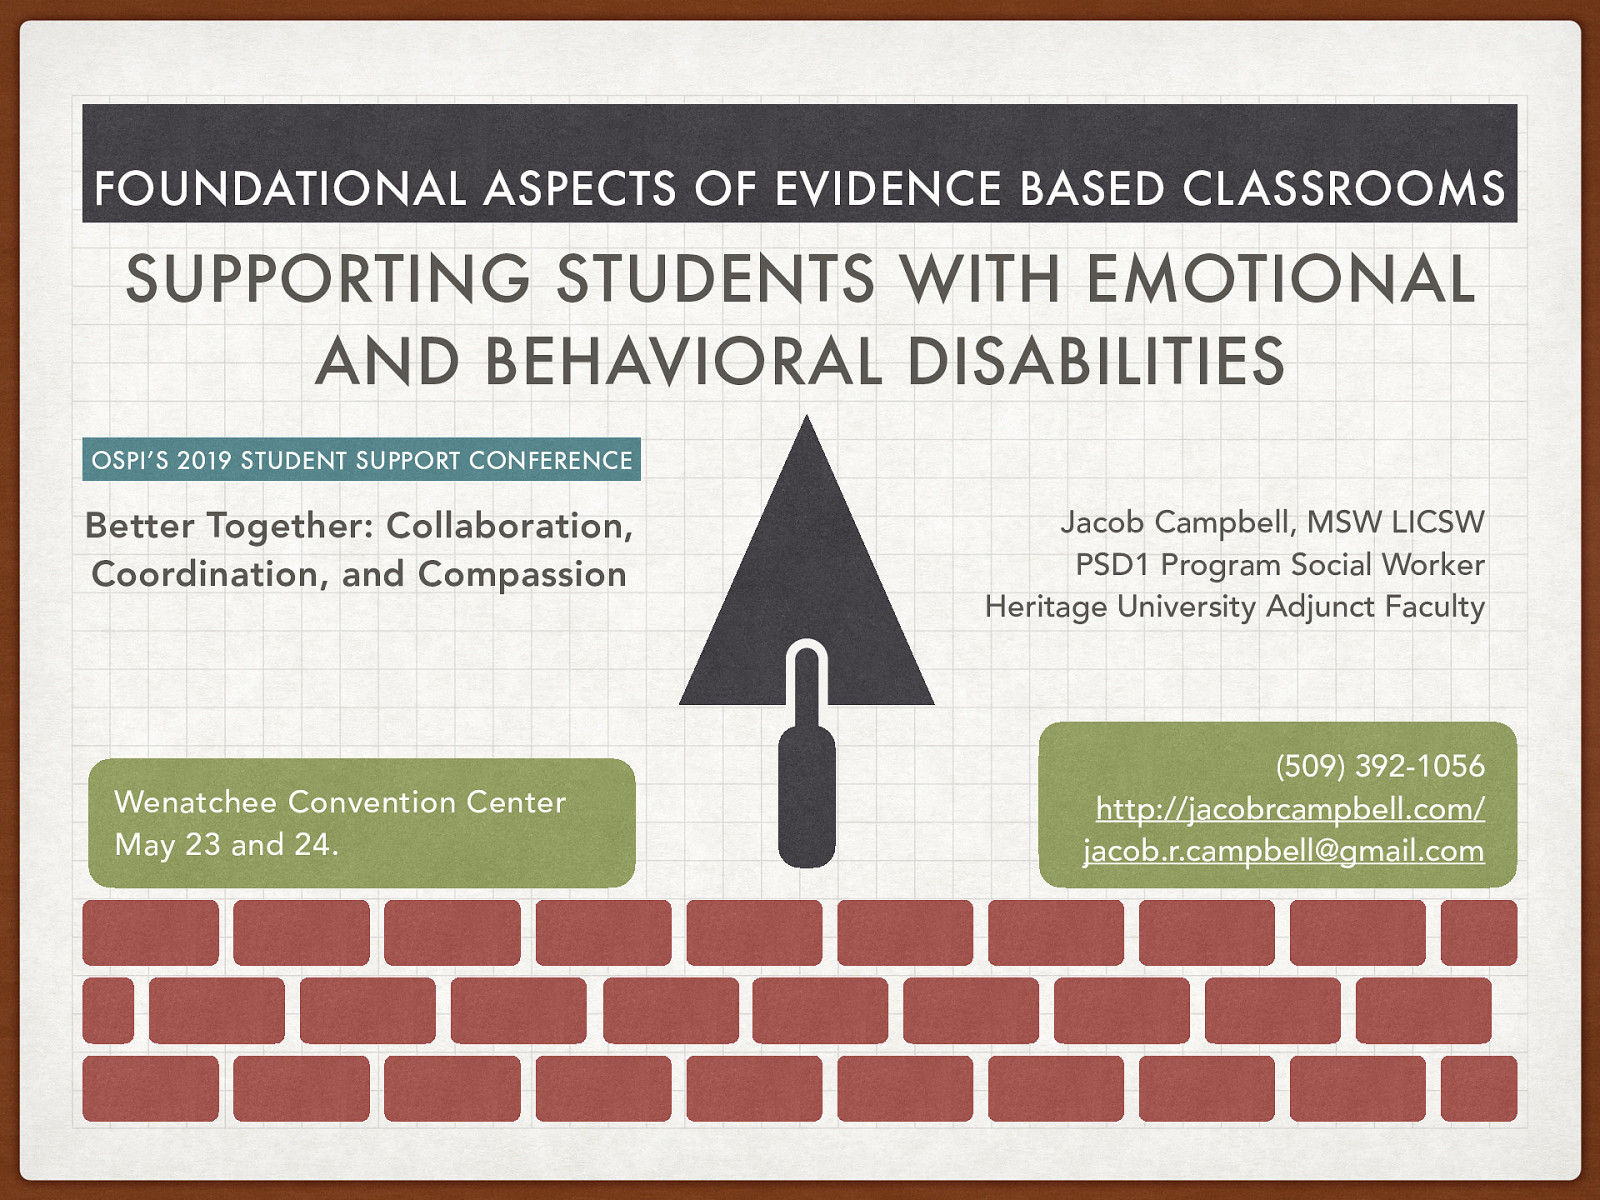 Foundational Aspects of Evidence Based Classrooms: Supporting Students with Emotional and Behavioral Disabilities